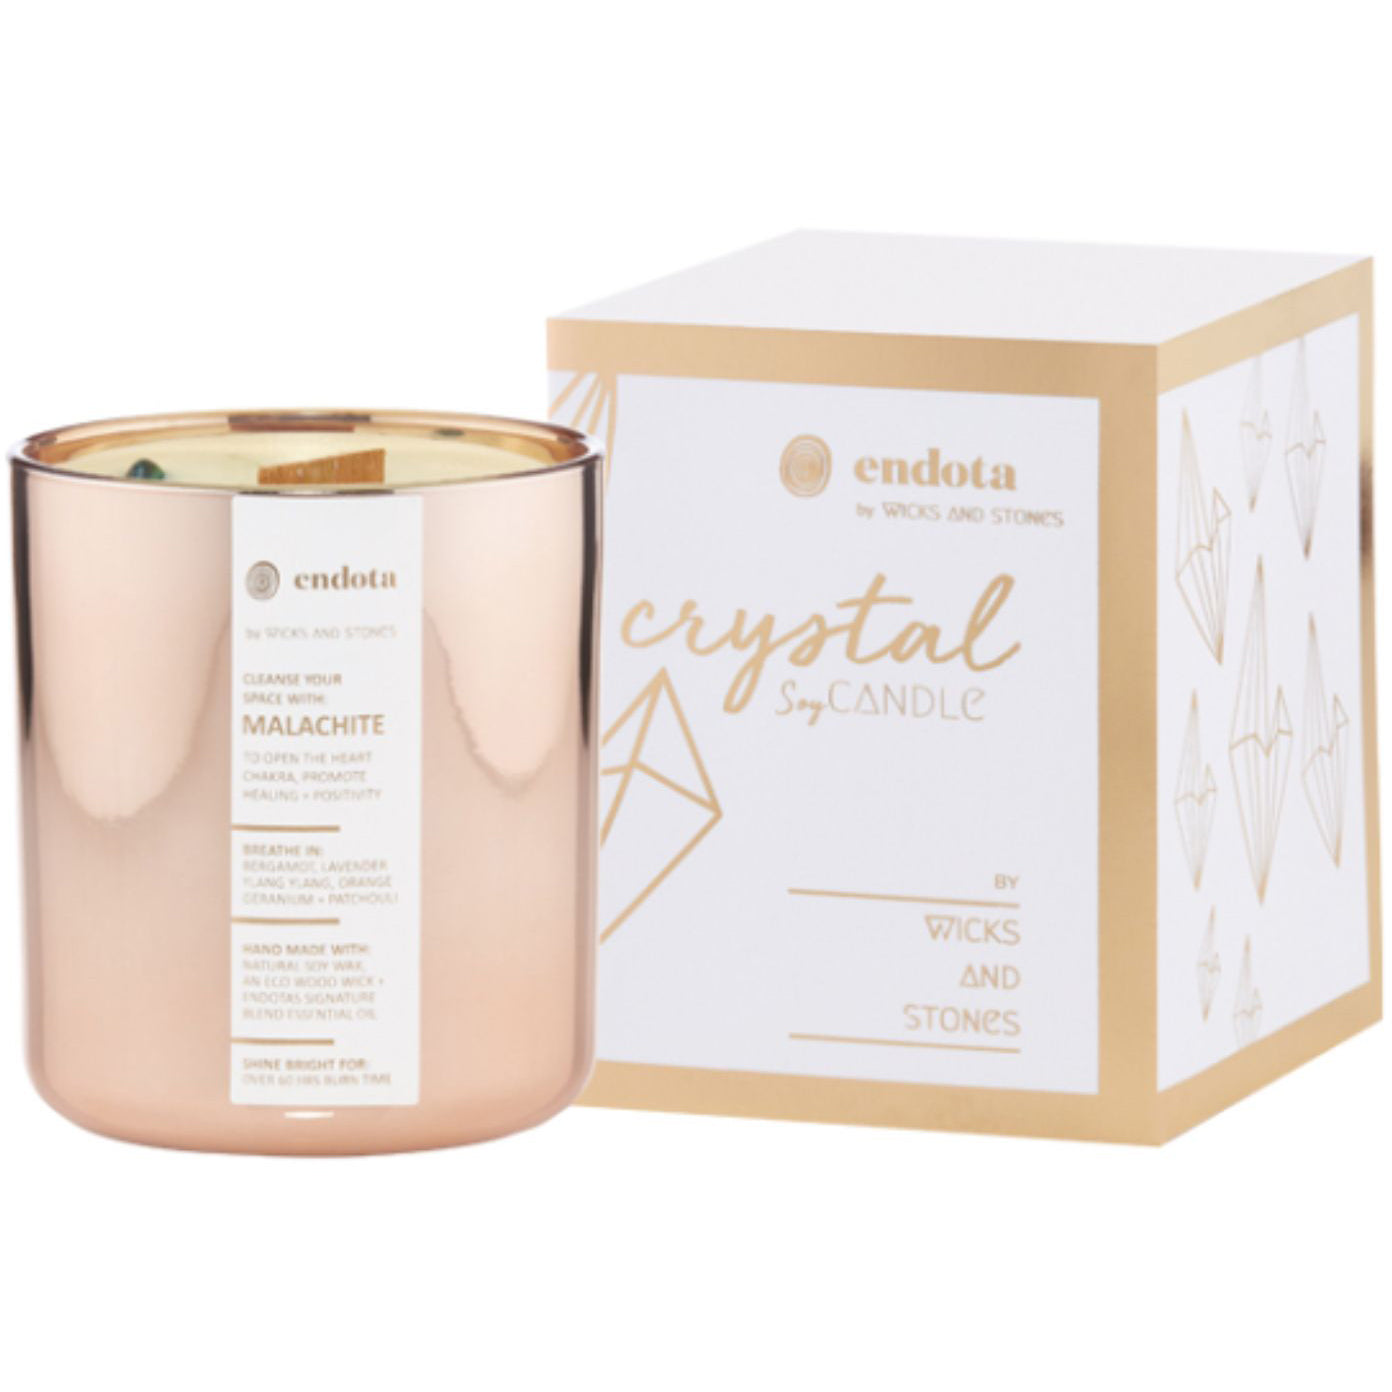 Endota Spa Wicks and Stones for endota - limited-edition candle